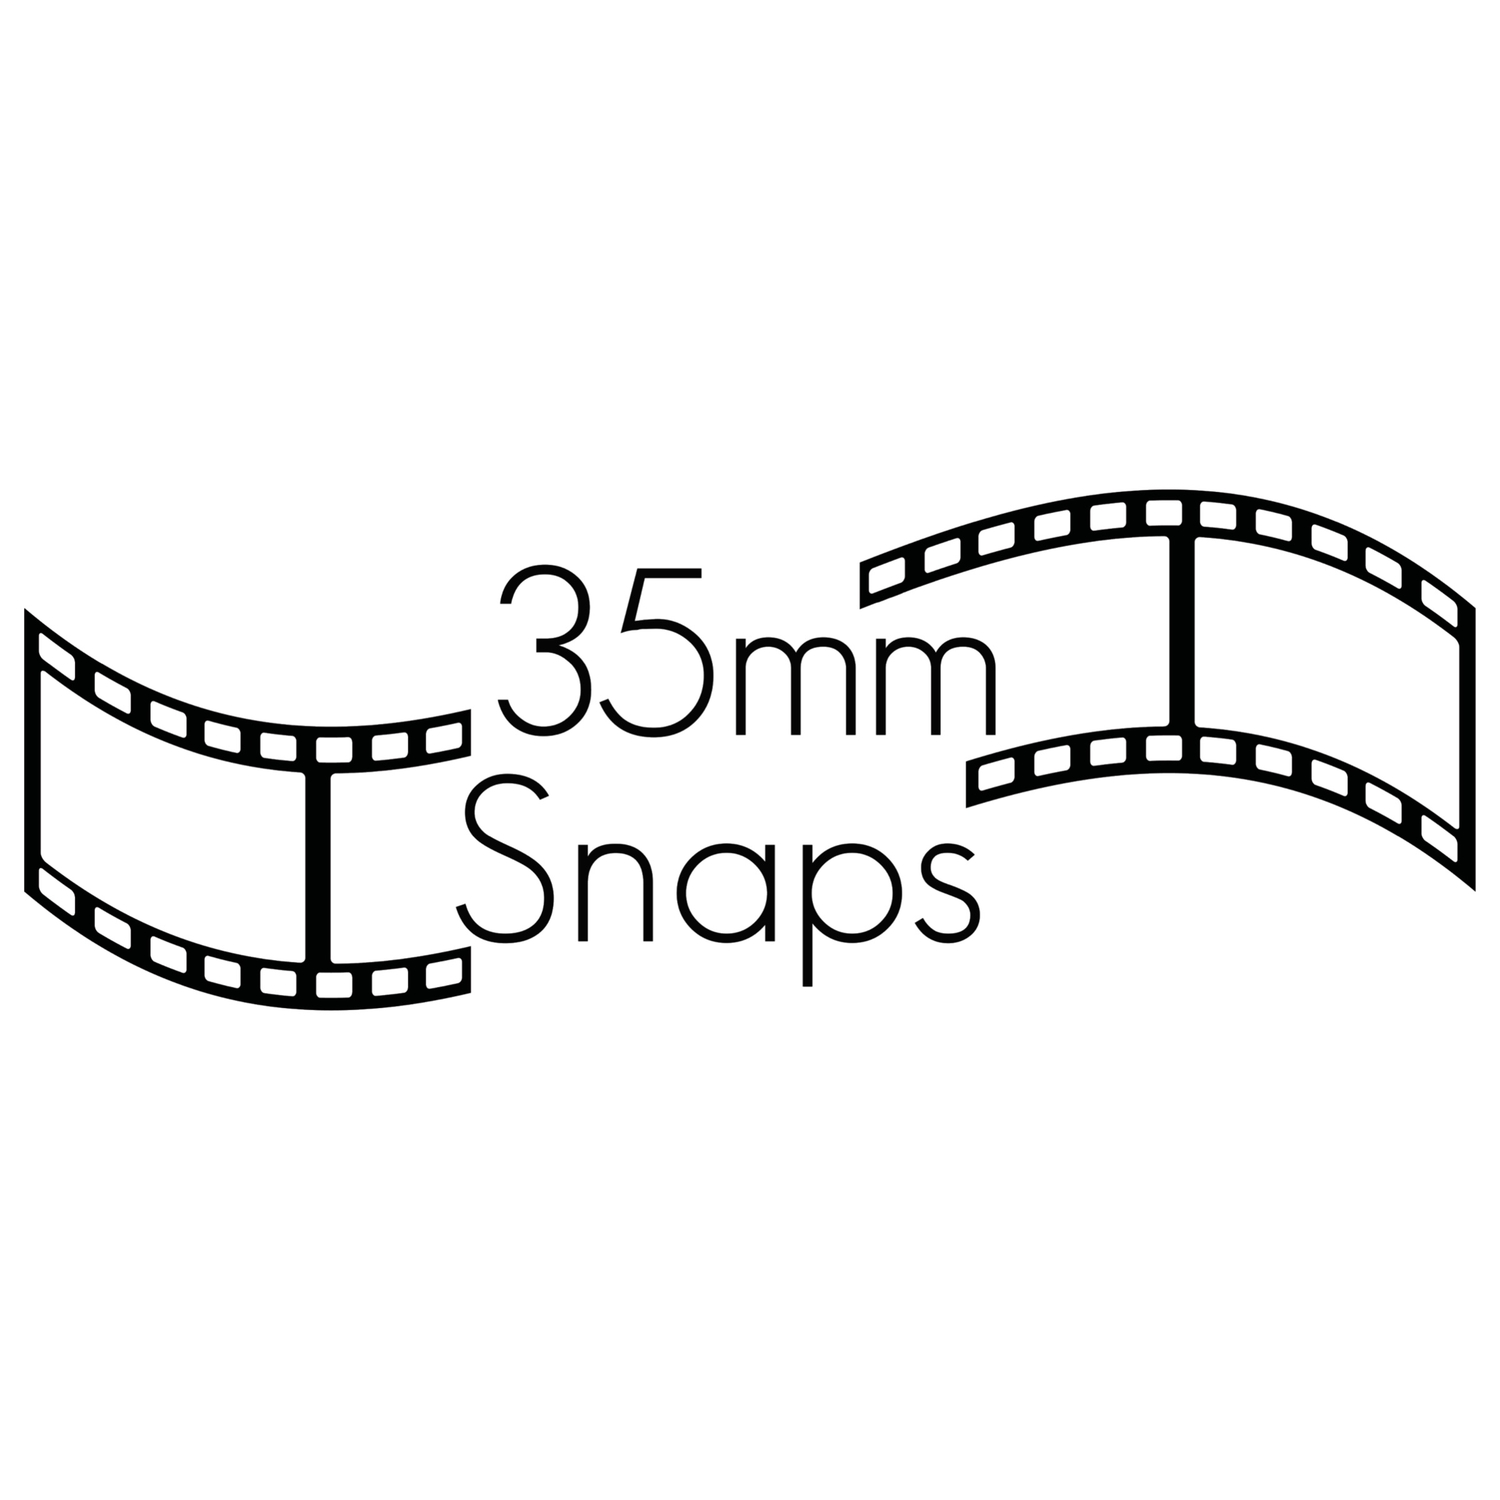 35mm Snaps image